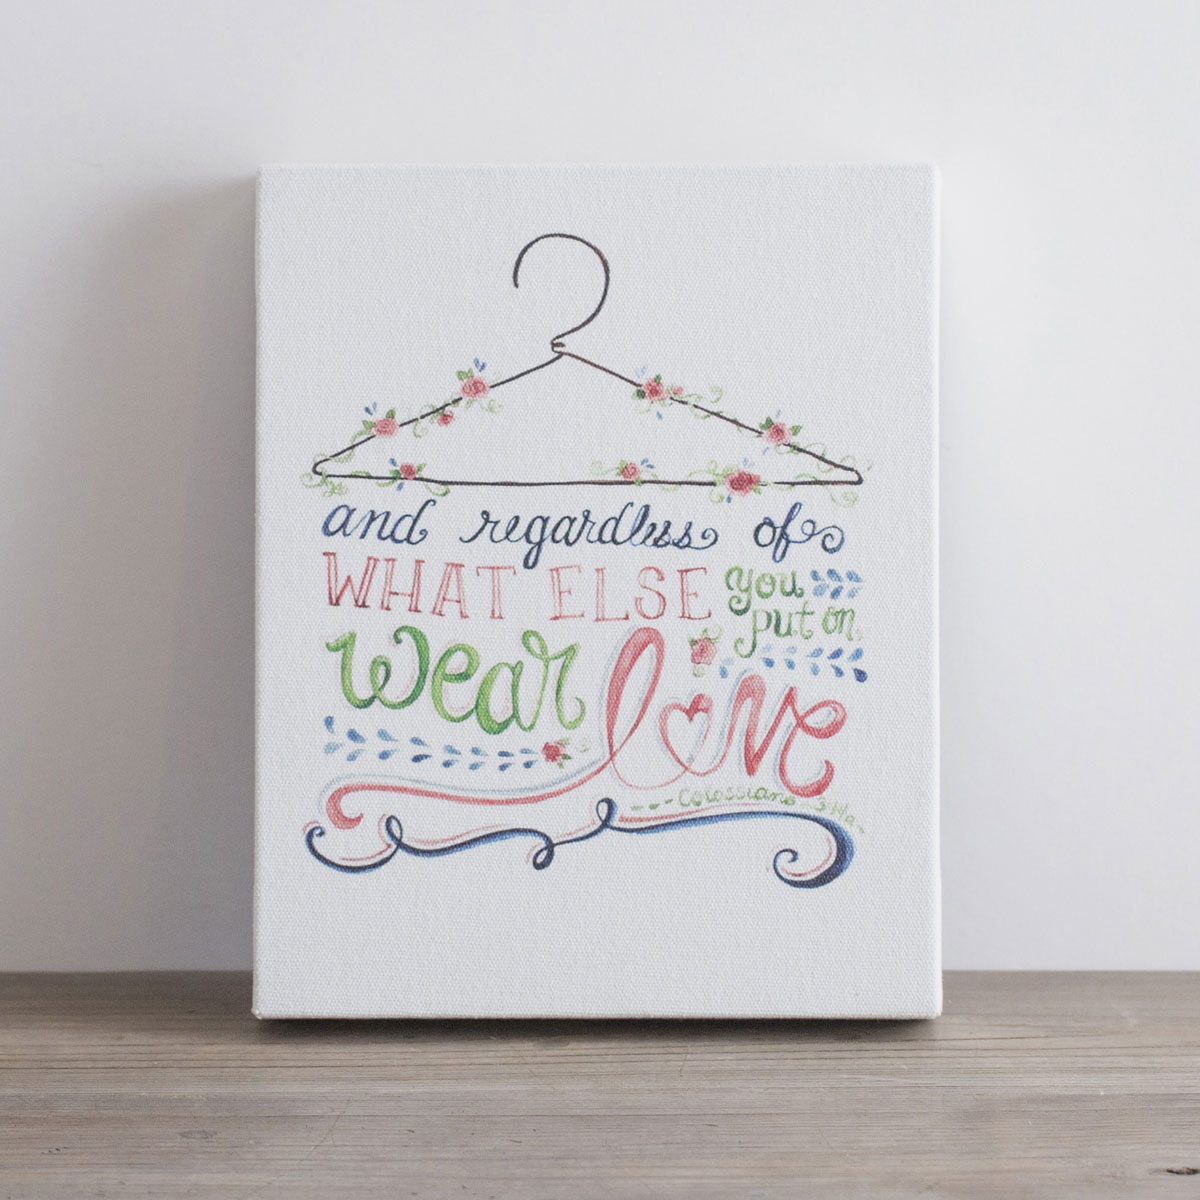 Wear Love - Printed Canvas Block